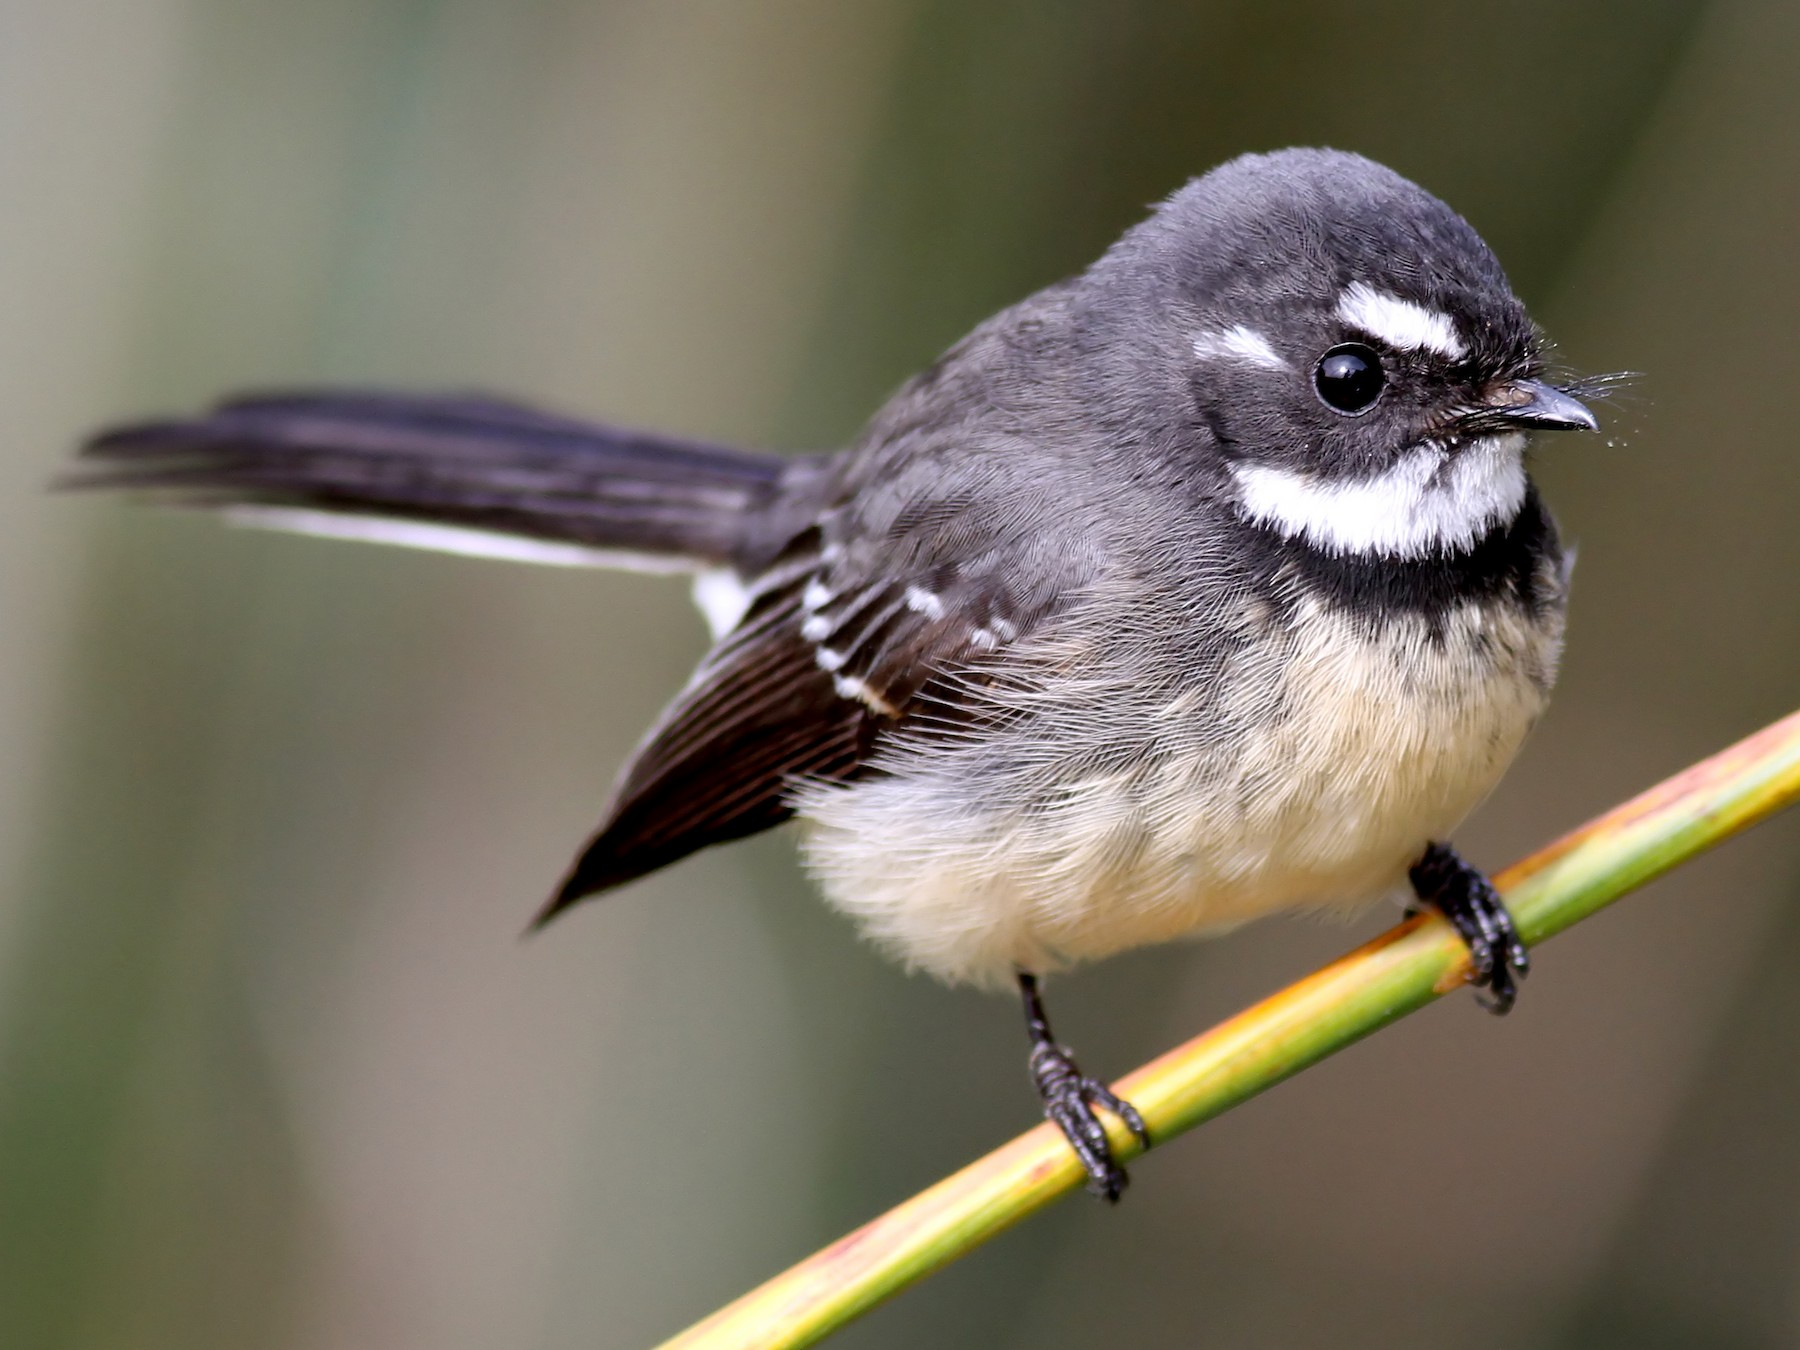 Grey Fantail Ebird Hide content and notifications from this user. grey fantail ebird